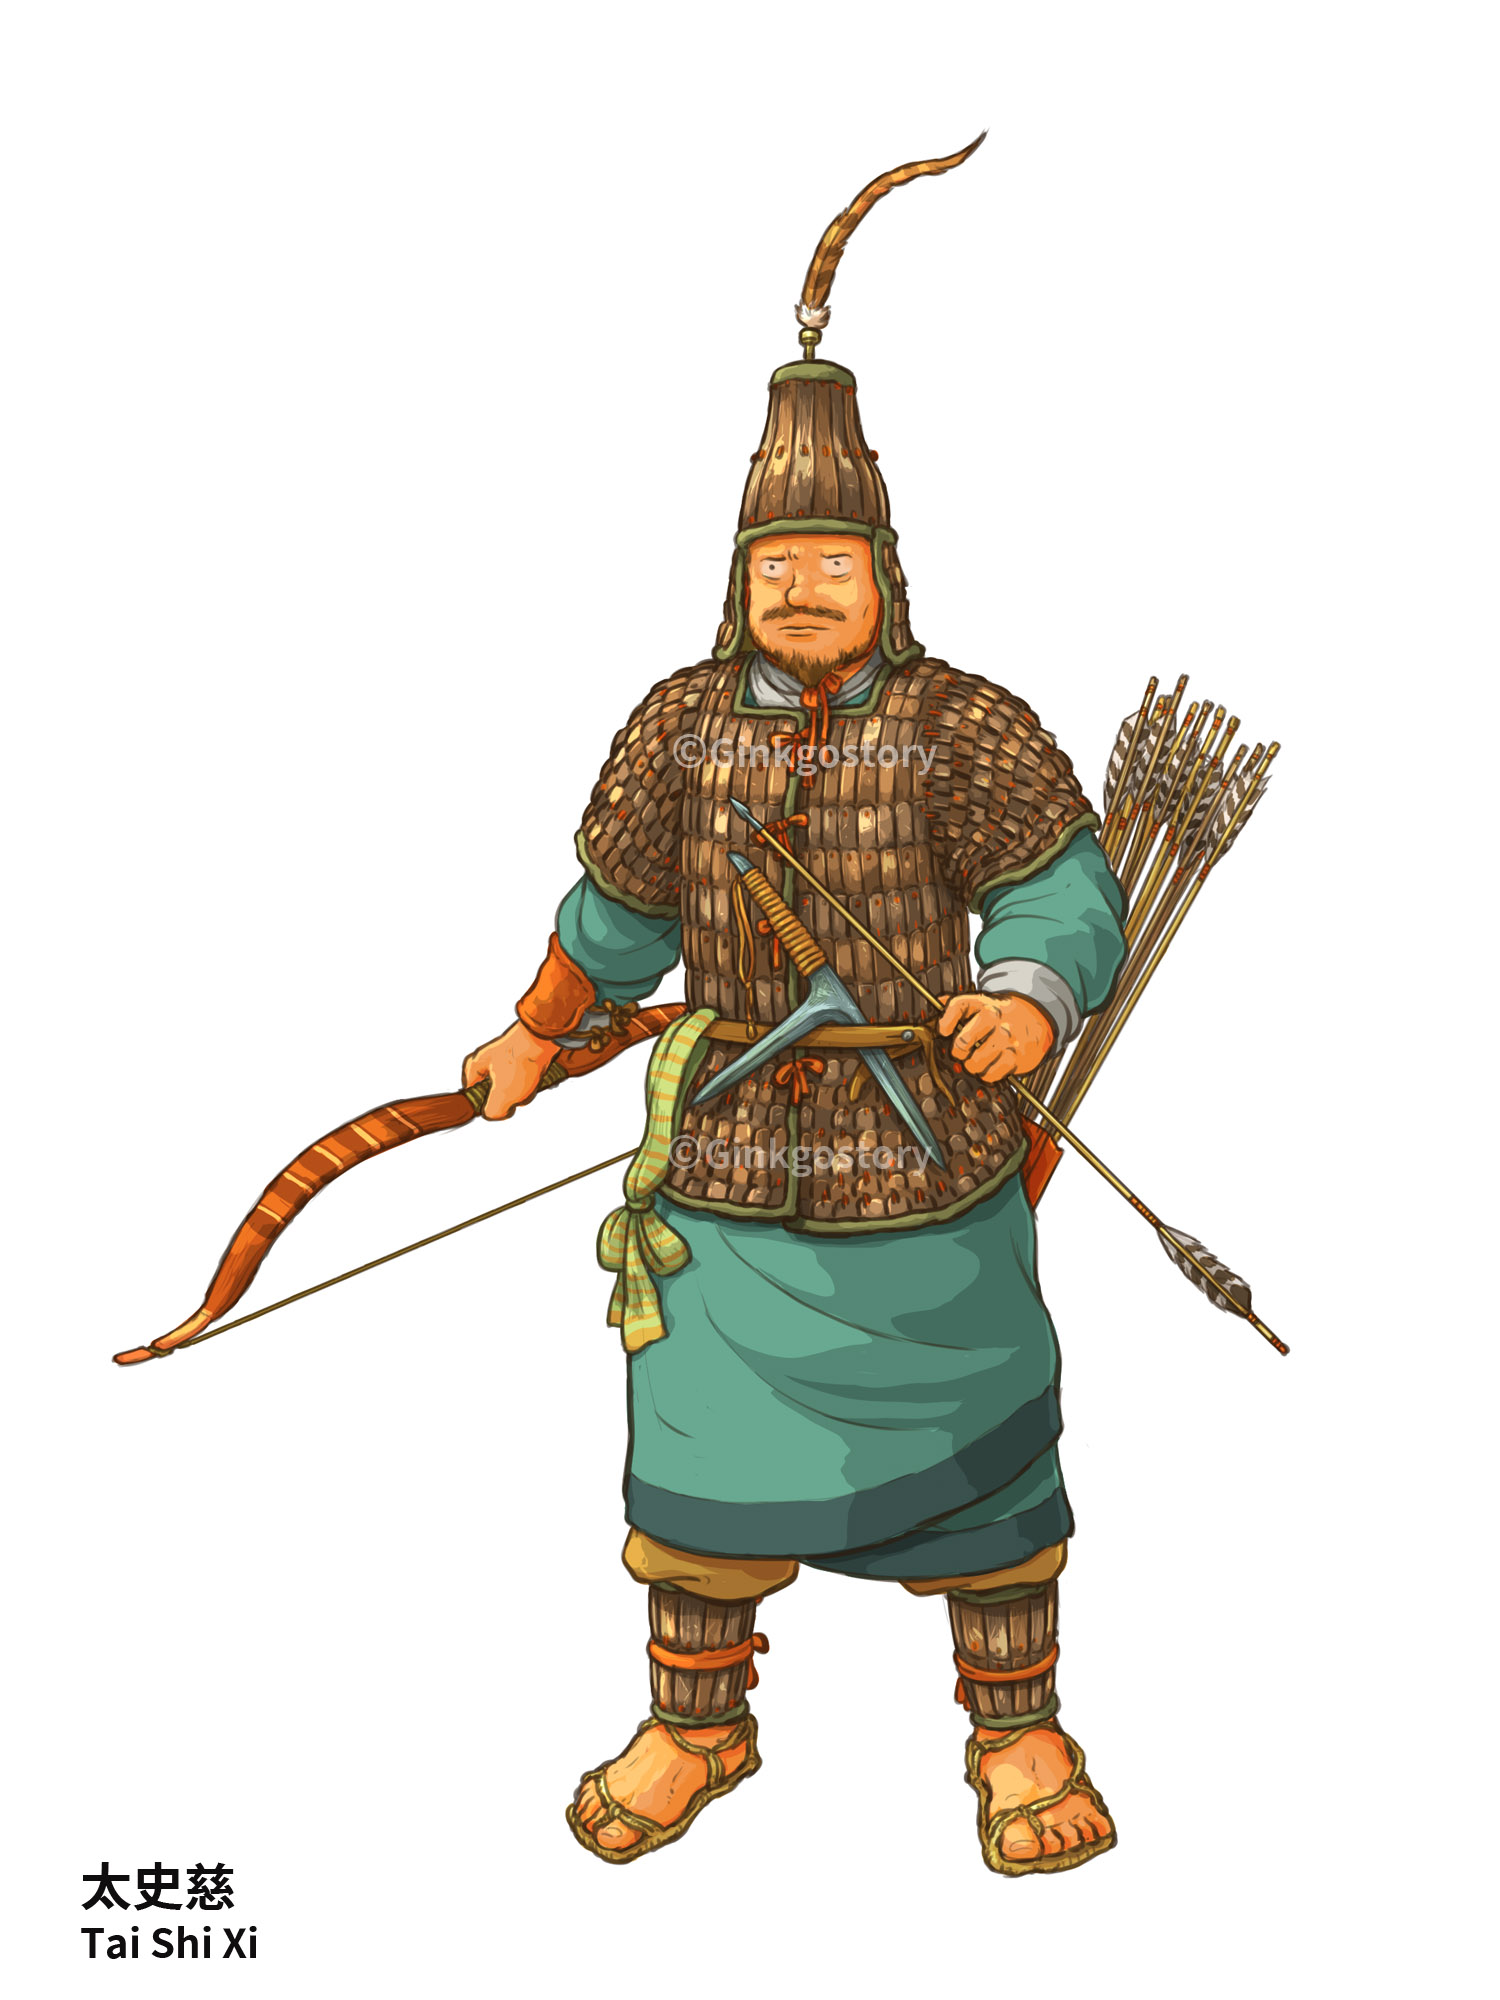 Three Kingdoms: Tai Shi Xi